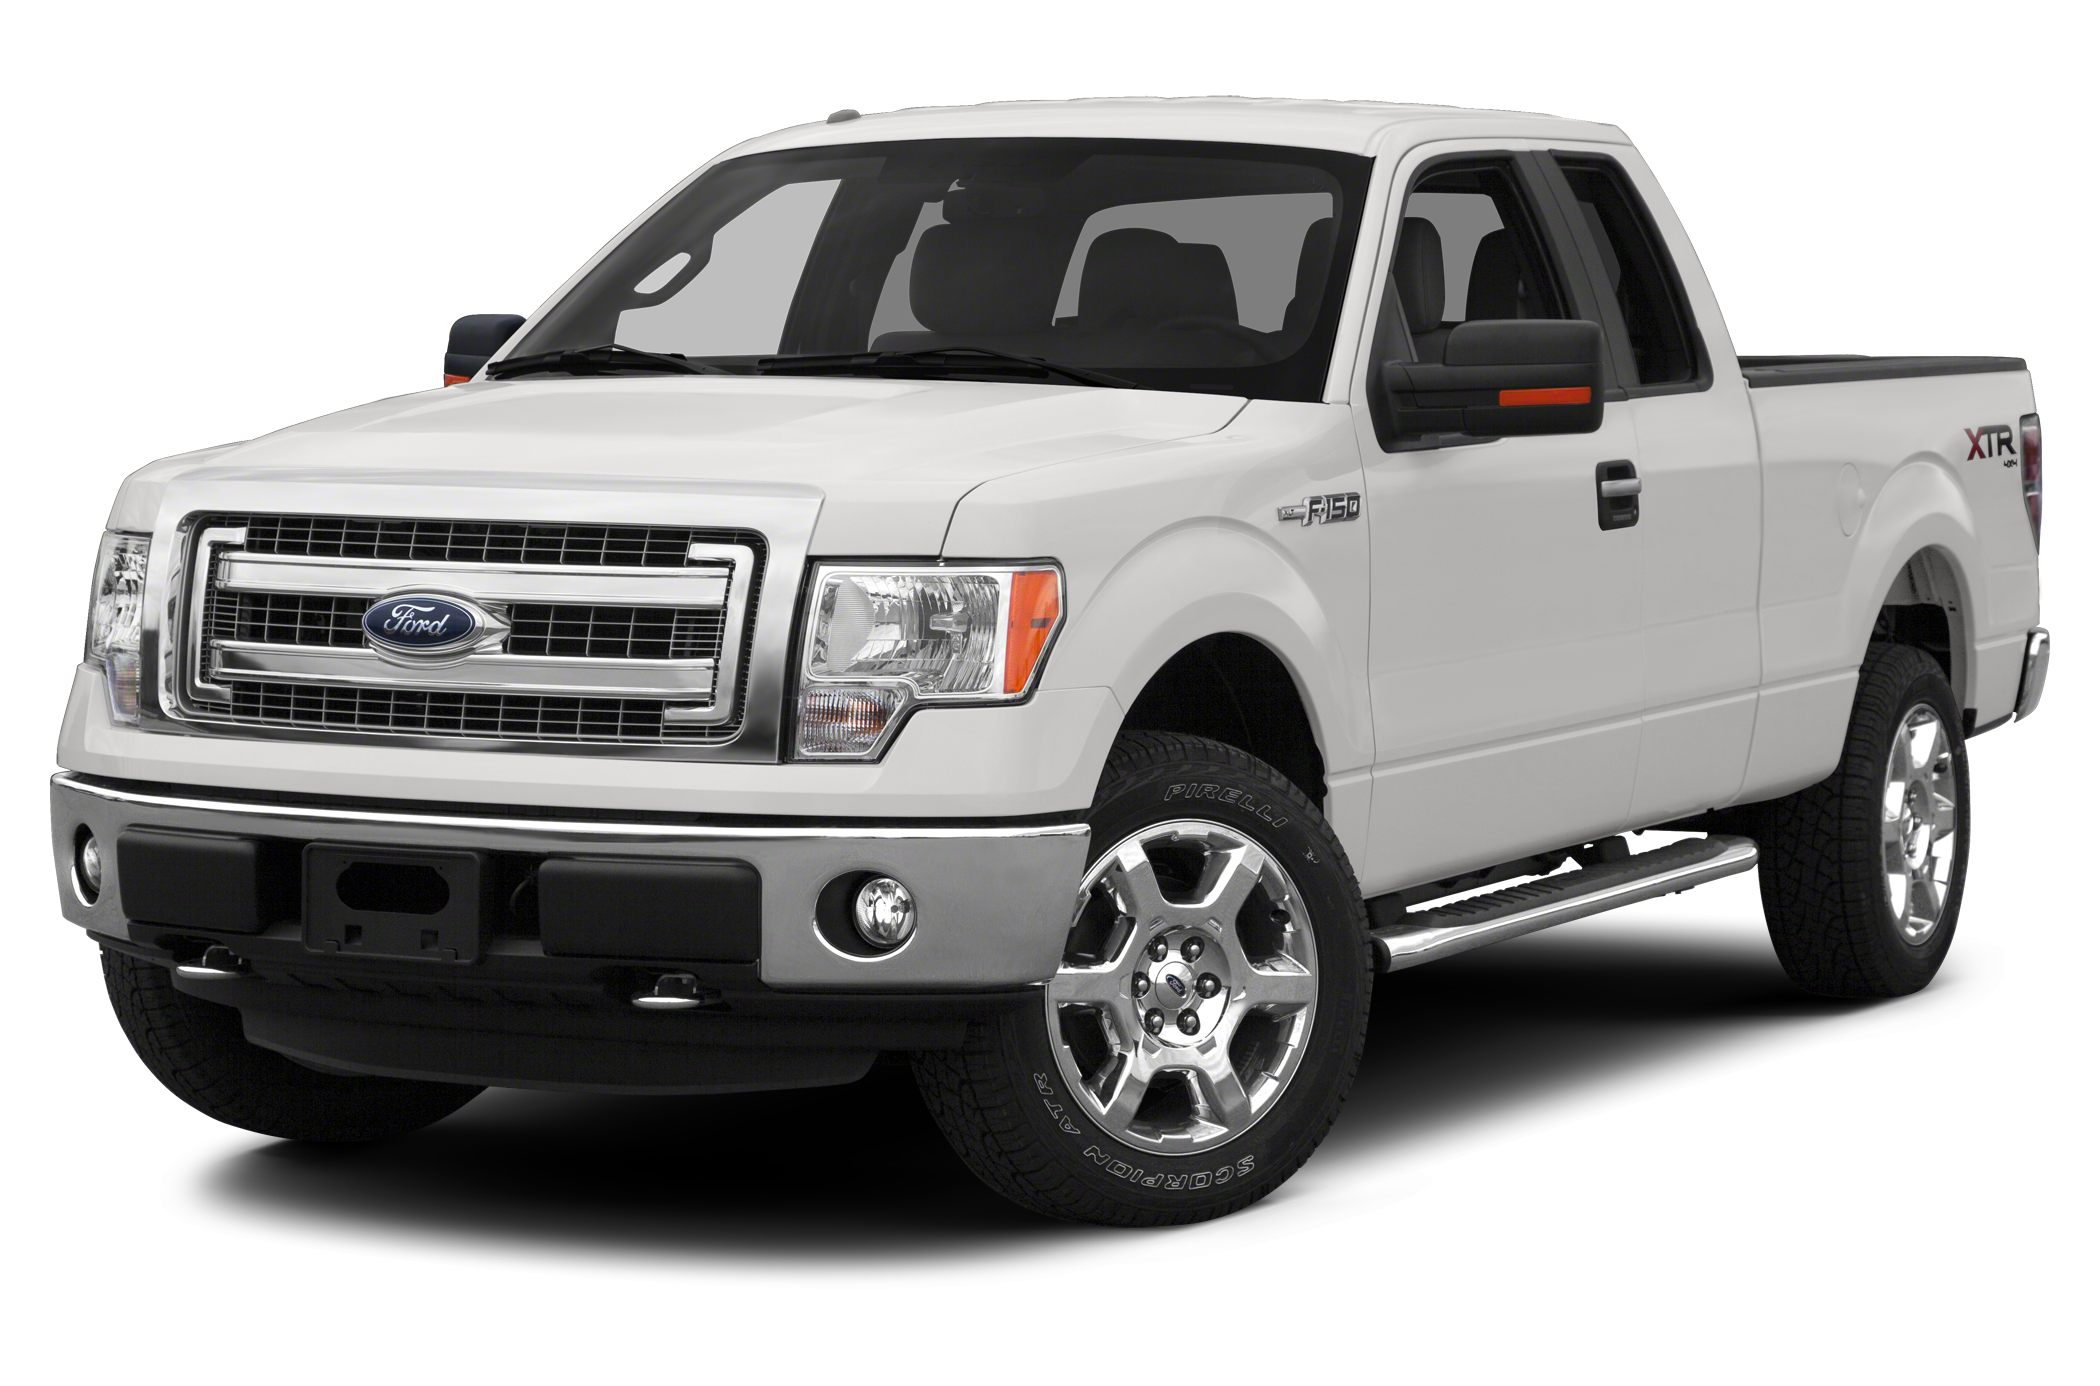 2013 Ford F150 Lariat Crew Cab Pickup for sale in Fort Dodge for $33,852 with 80,030 miles.